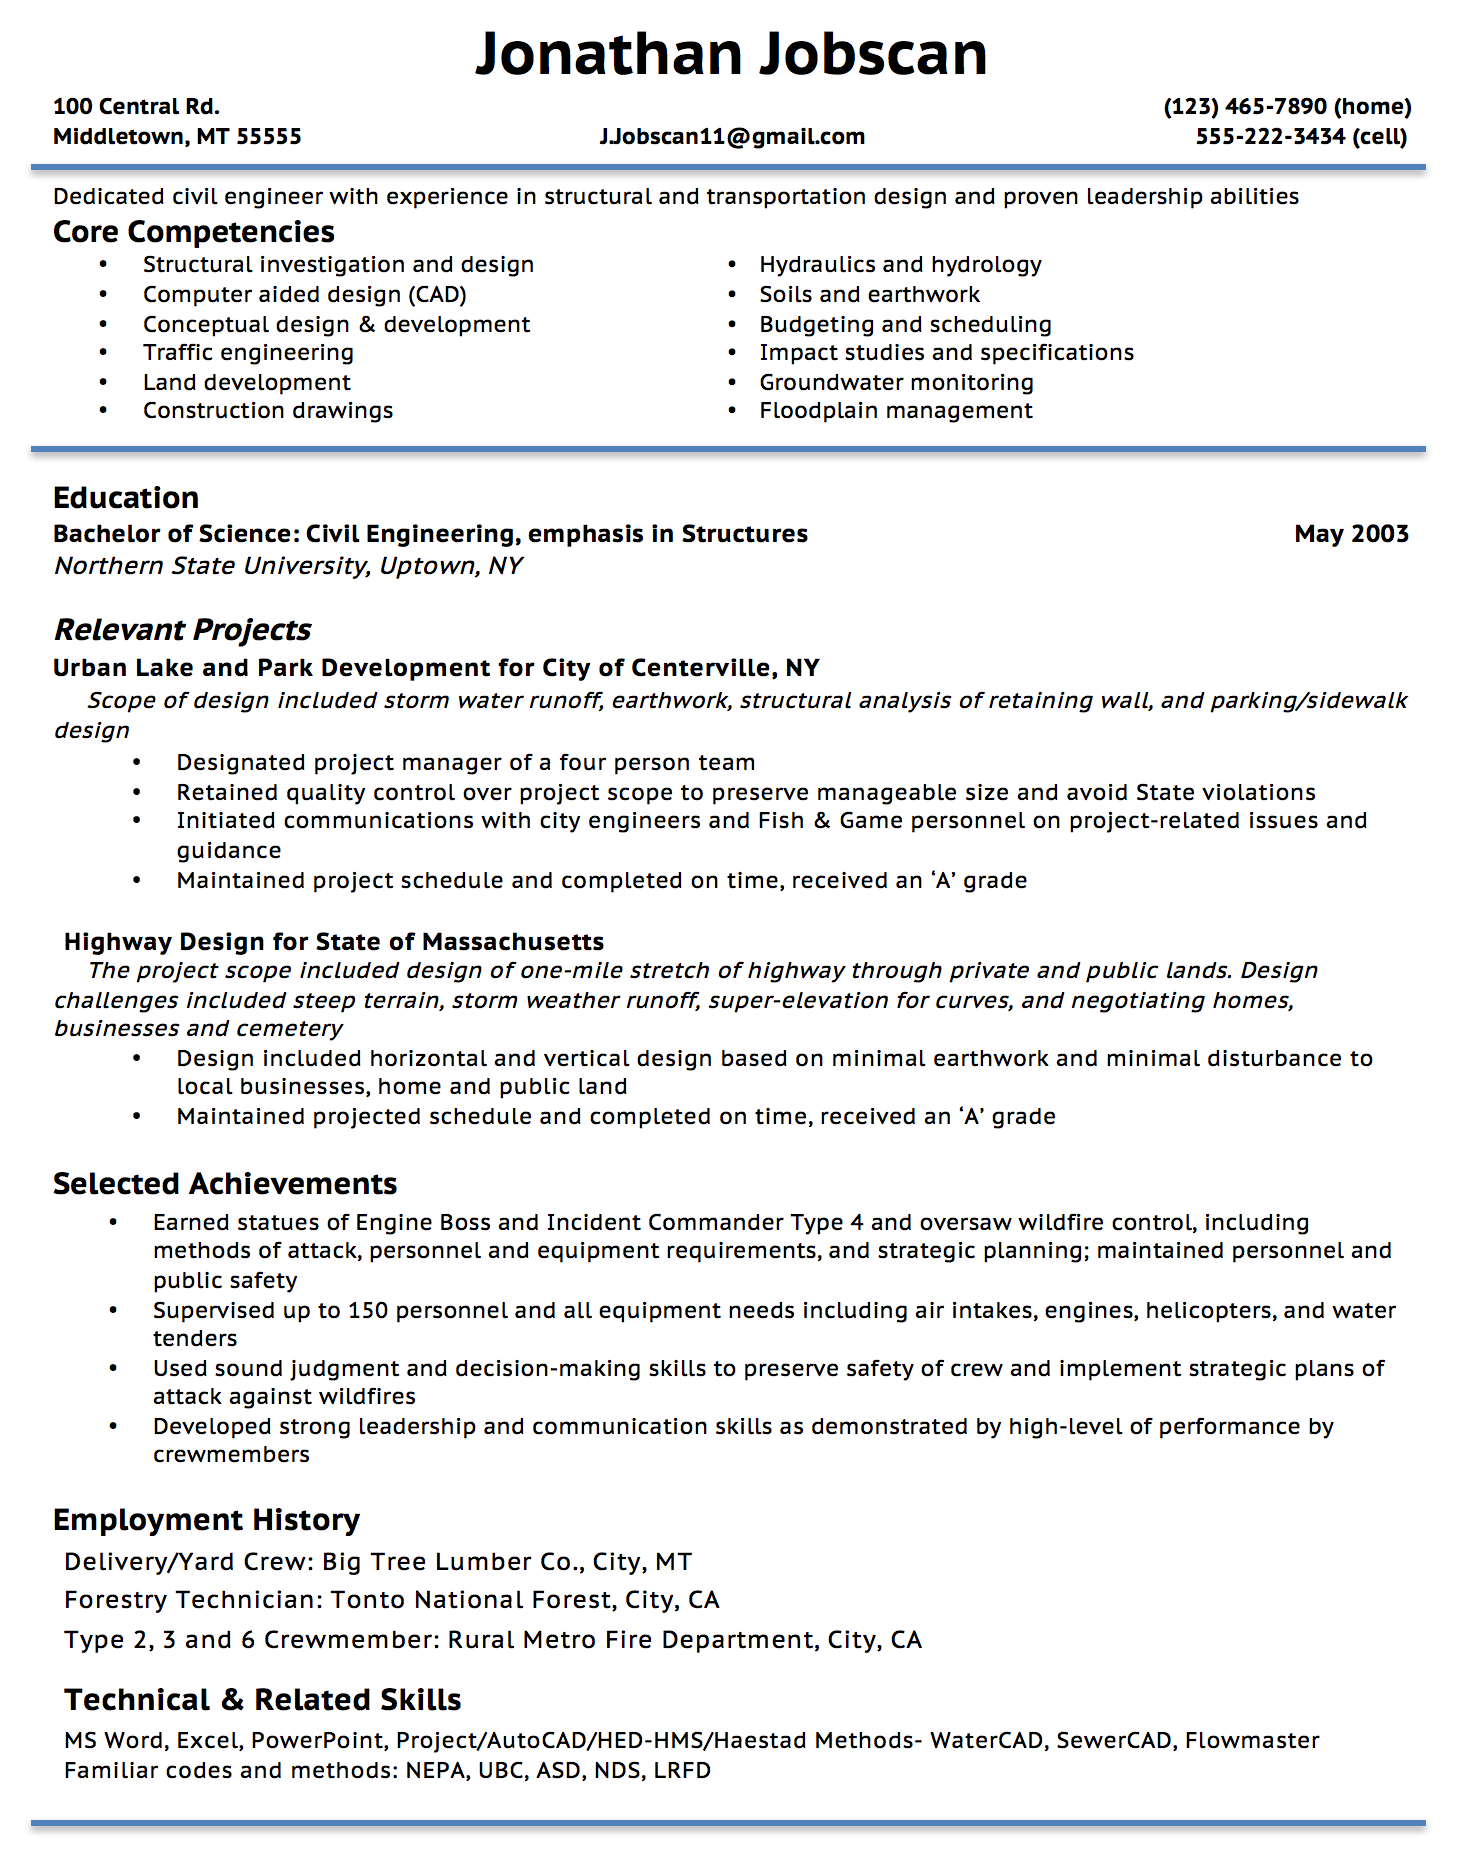 Opposenewapstandardsus  Prepossessing Resume Writing Guide  Jobscan With Luxury Example Of A Functional Resume Format With Divine Youth Pastor Resume Also Resume For Social Worker In Addition Office Assistant Job Description Resume And Google Doc Resume Templates As Well As Pre K Teacher Resume Additionally Management Analyst Resume From Jobscanco With Opposenewapstandardsus  Luxury Resume Writing Guide  Jobscan With Divine Example Of A Functional Resume Format And Prepossessing Youth Pastor Resume Also Resume For Social Worker In Addition Office Assistant Job Description Resume From Jobscanco